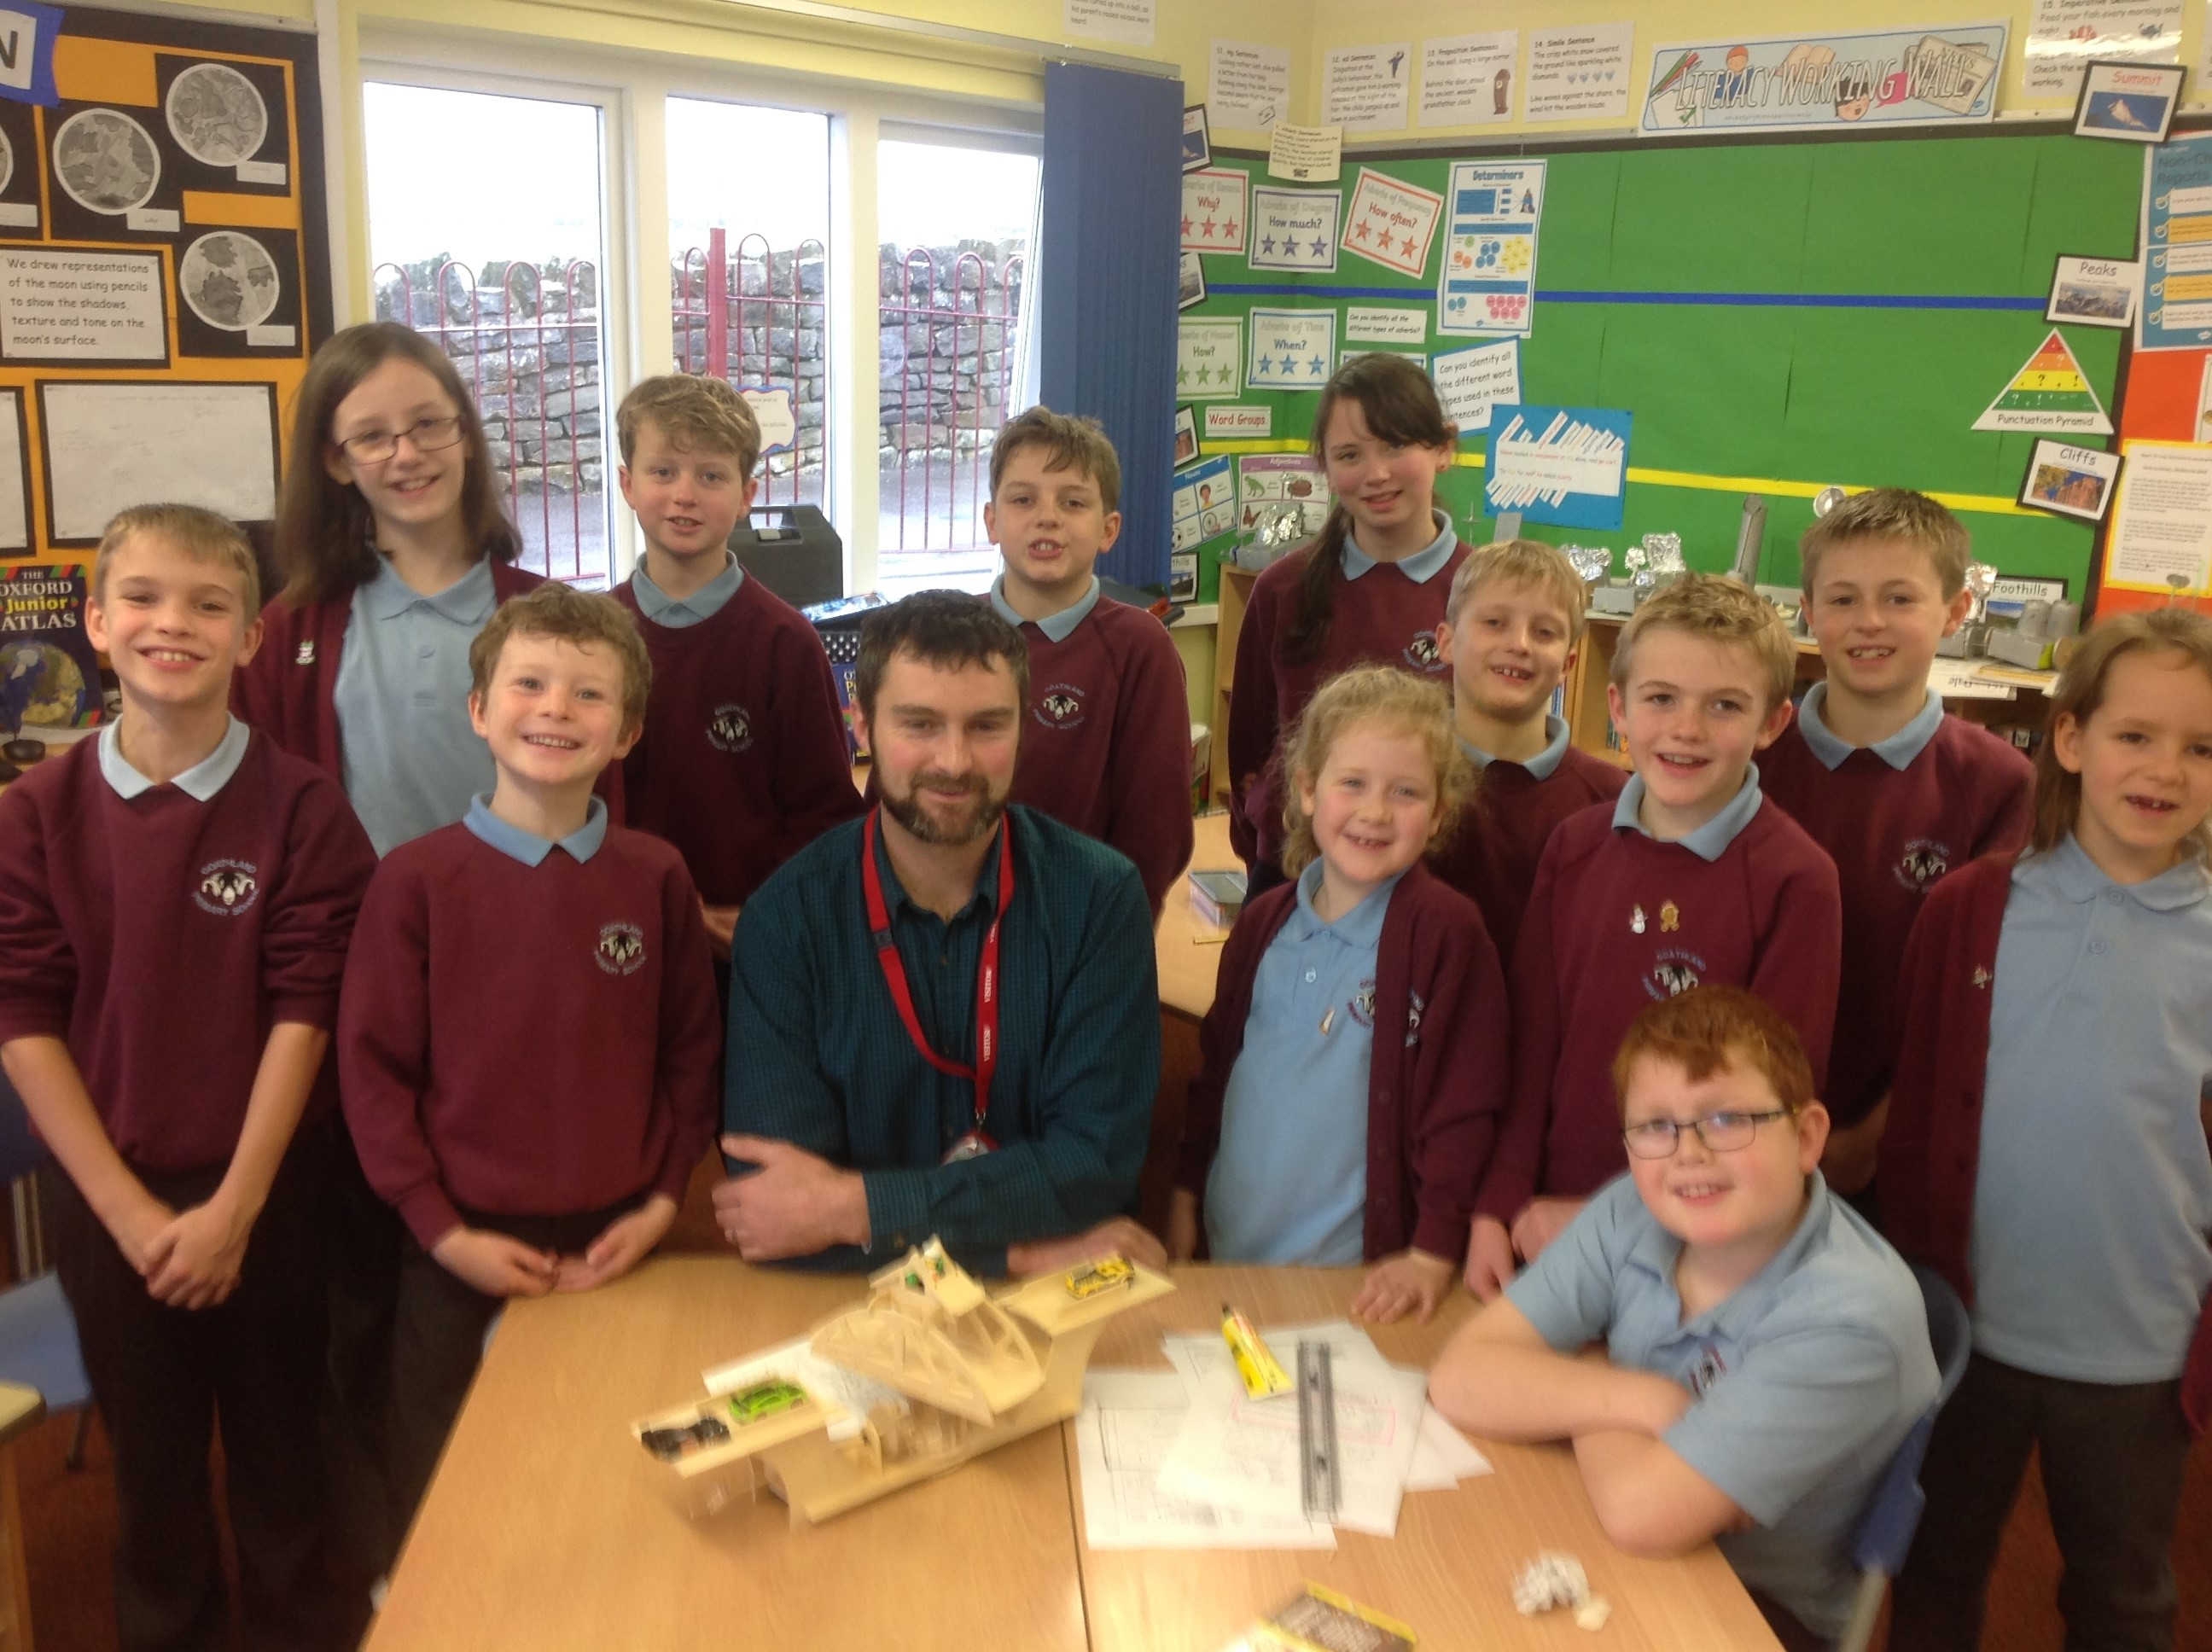 School Governor, Angus Nicholson, visited school in December. He worked with Base 2 building a model swing bridge similar to the bridge in Whitby harbour.